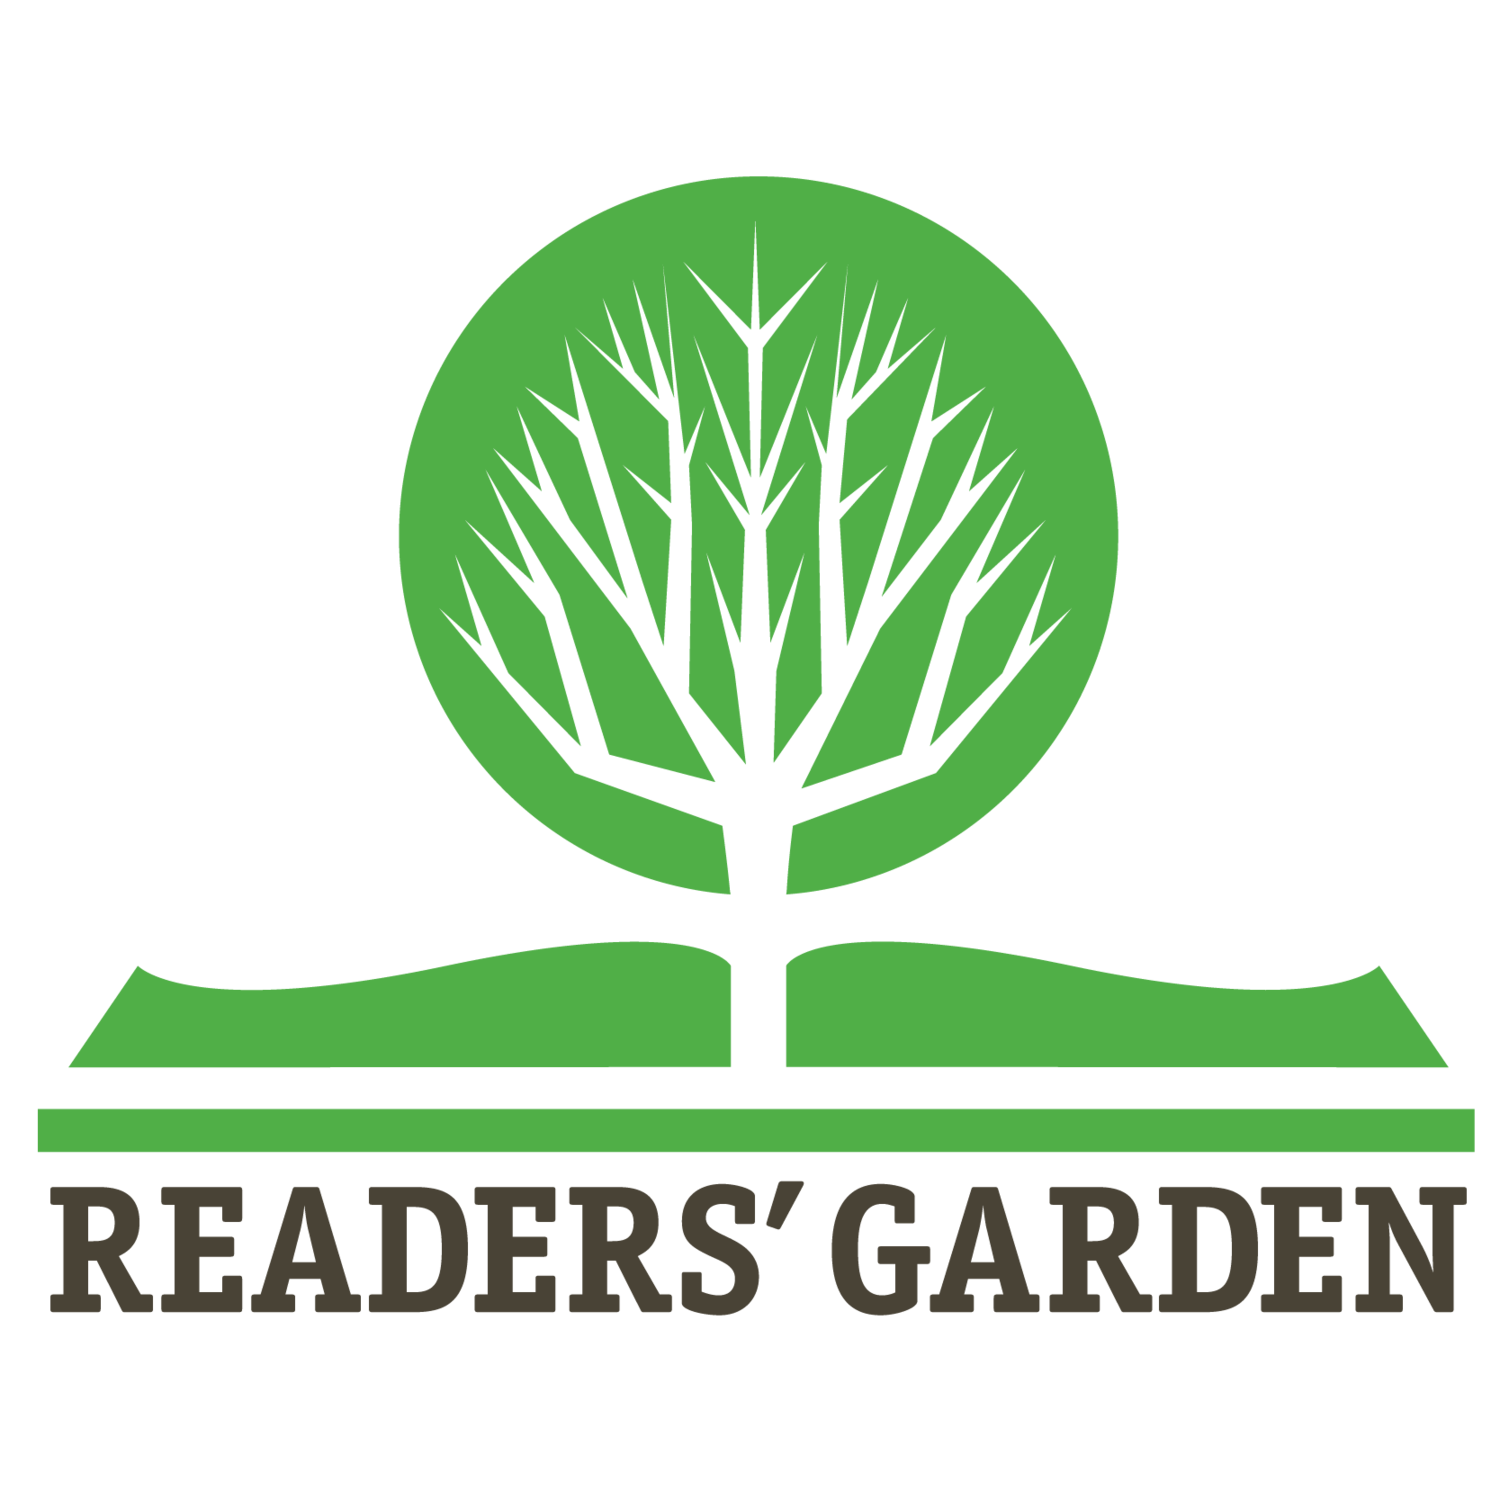 Readers' Garden Book Store